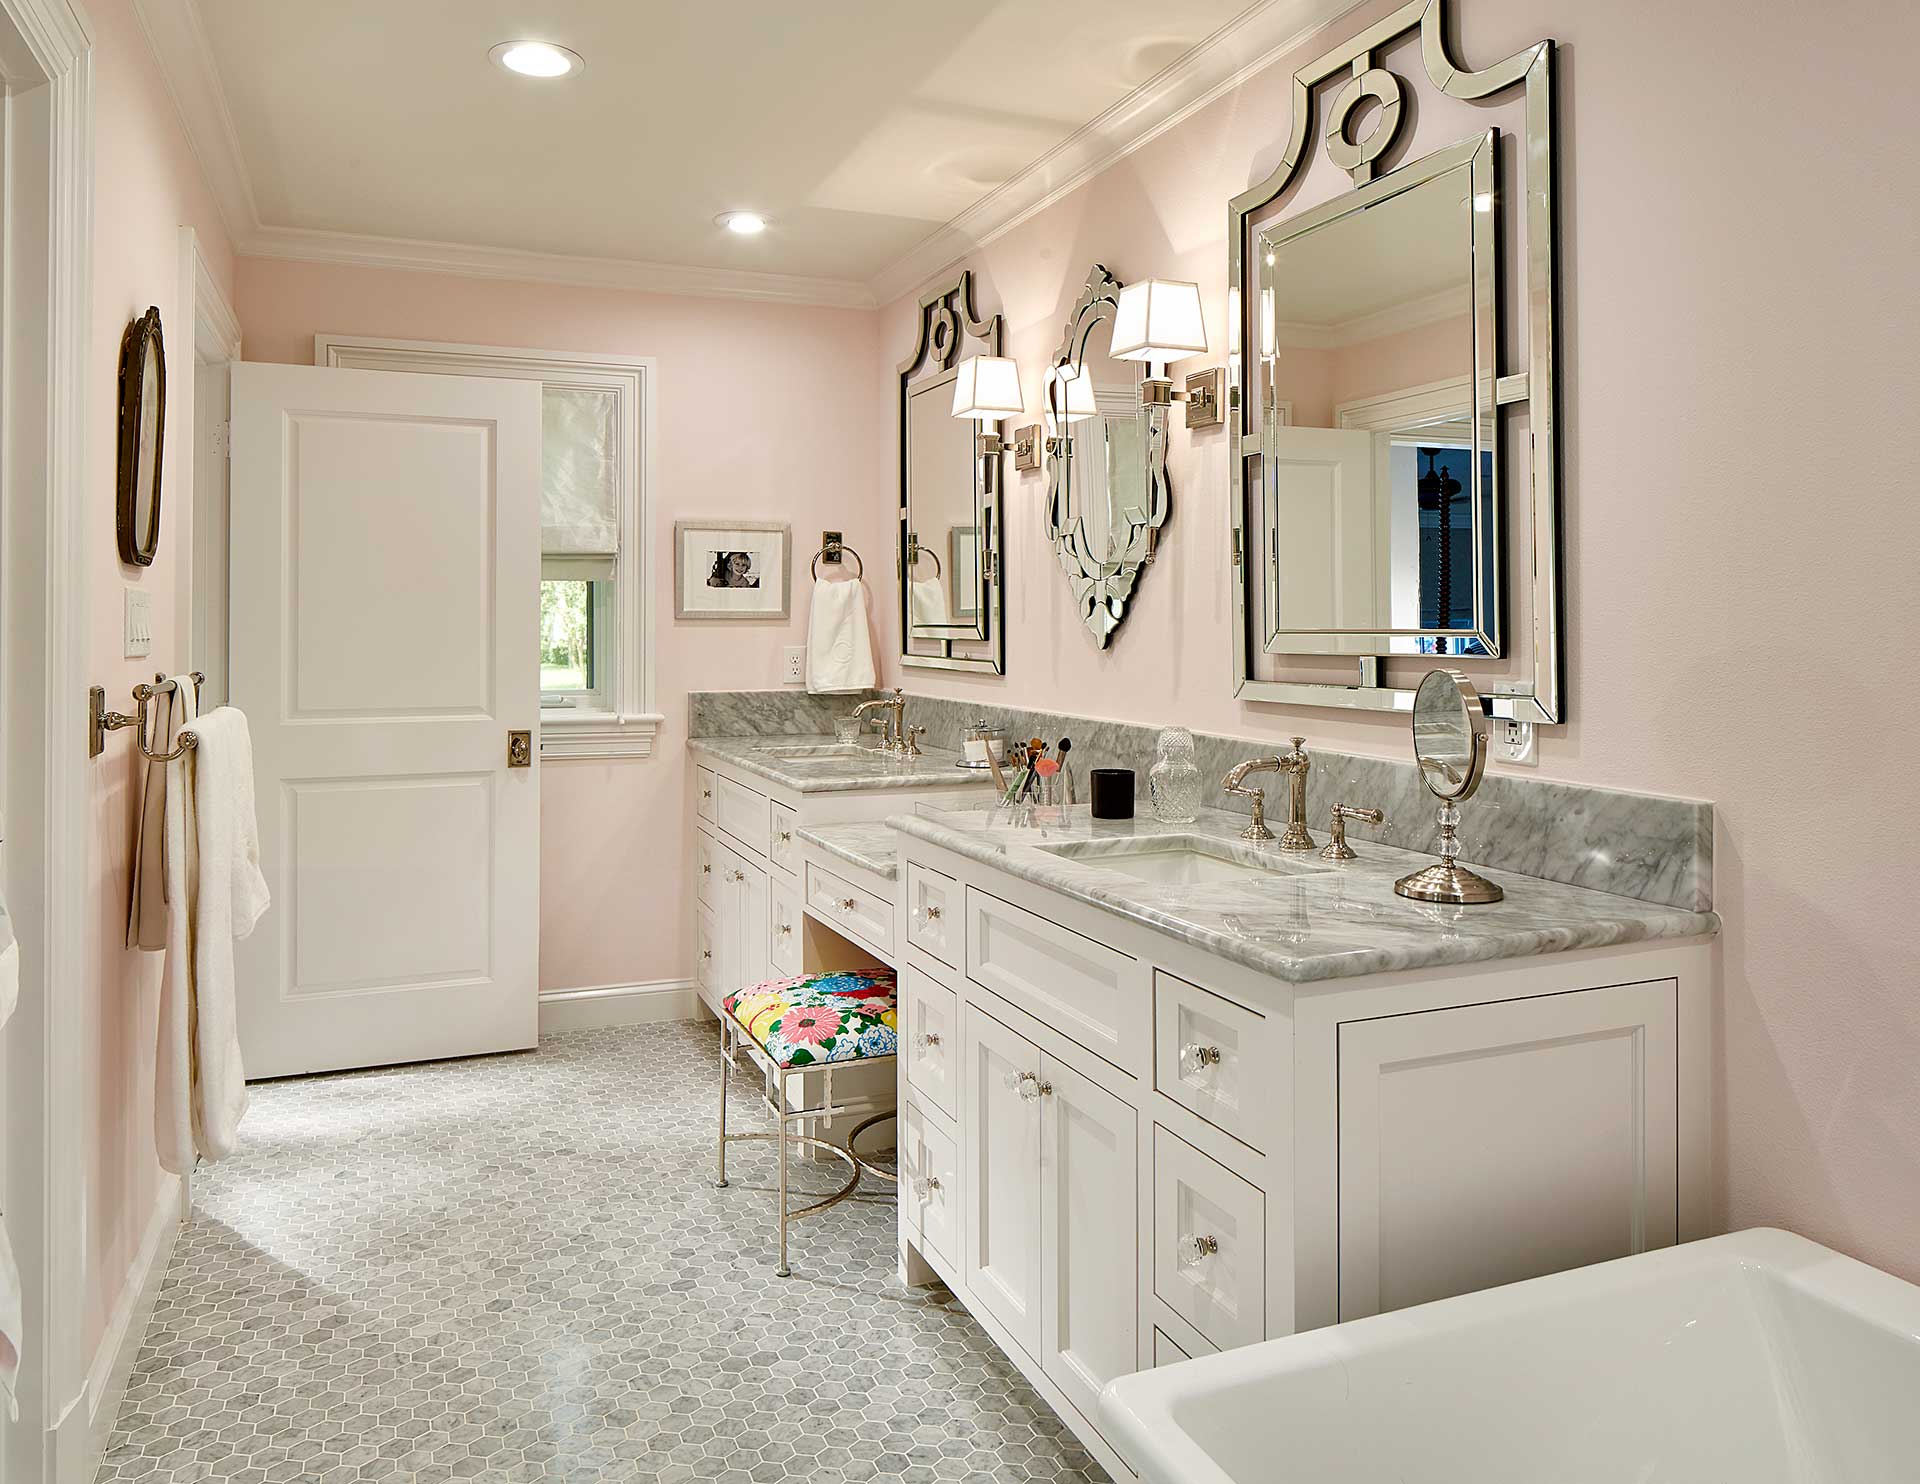 Preston Hollow Luxury Bathroom Renovation Blackline Renovations